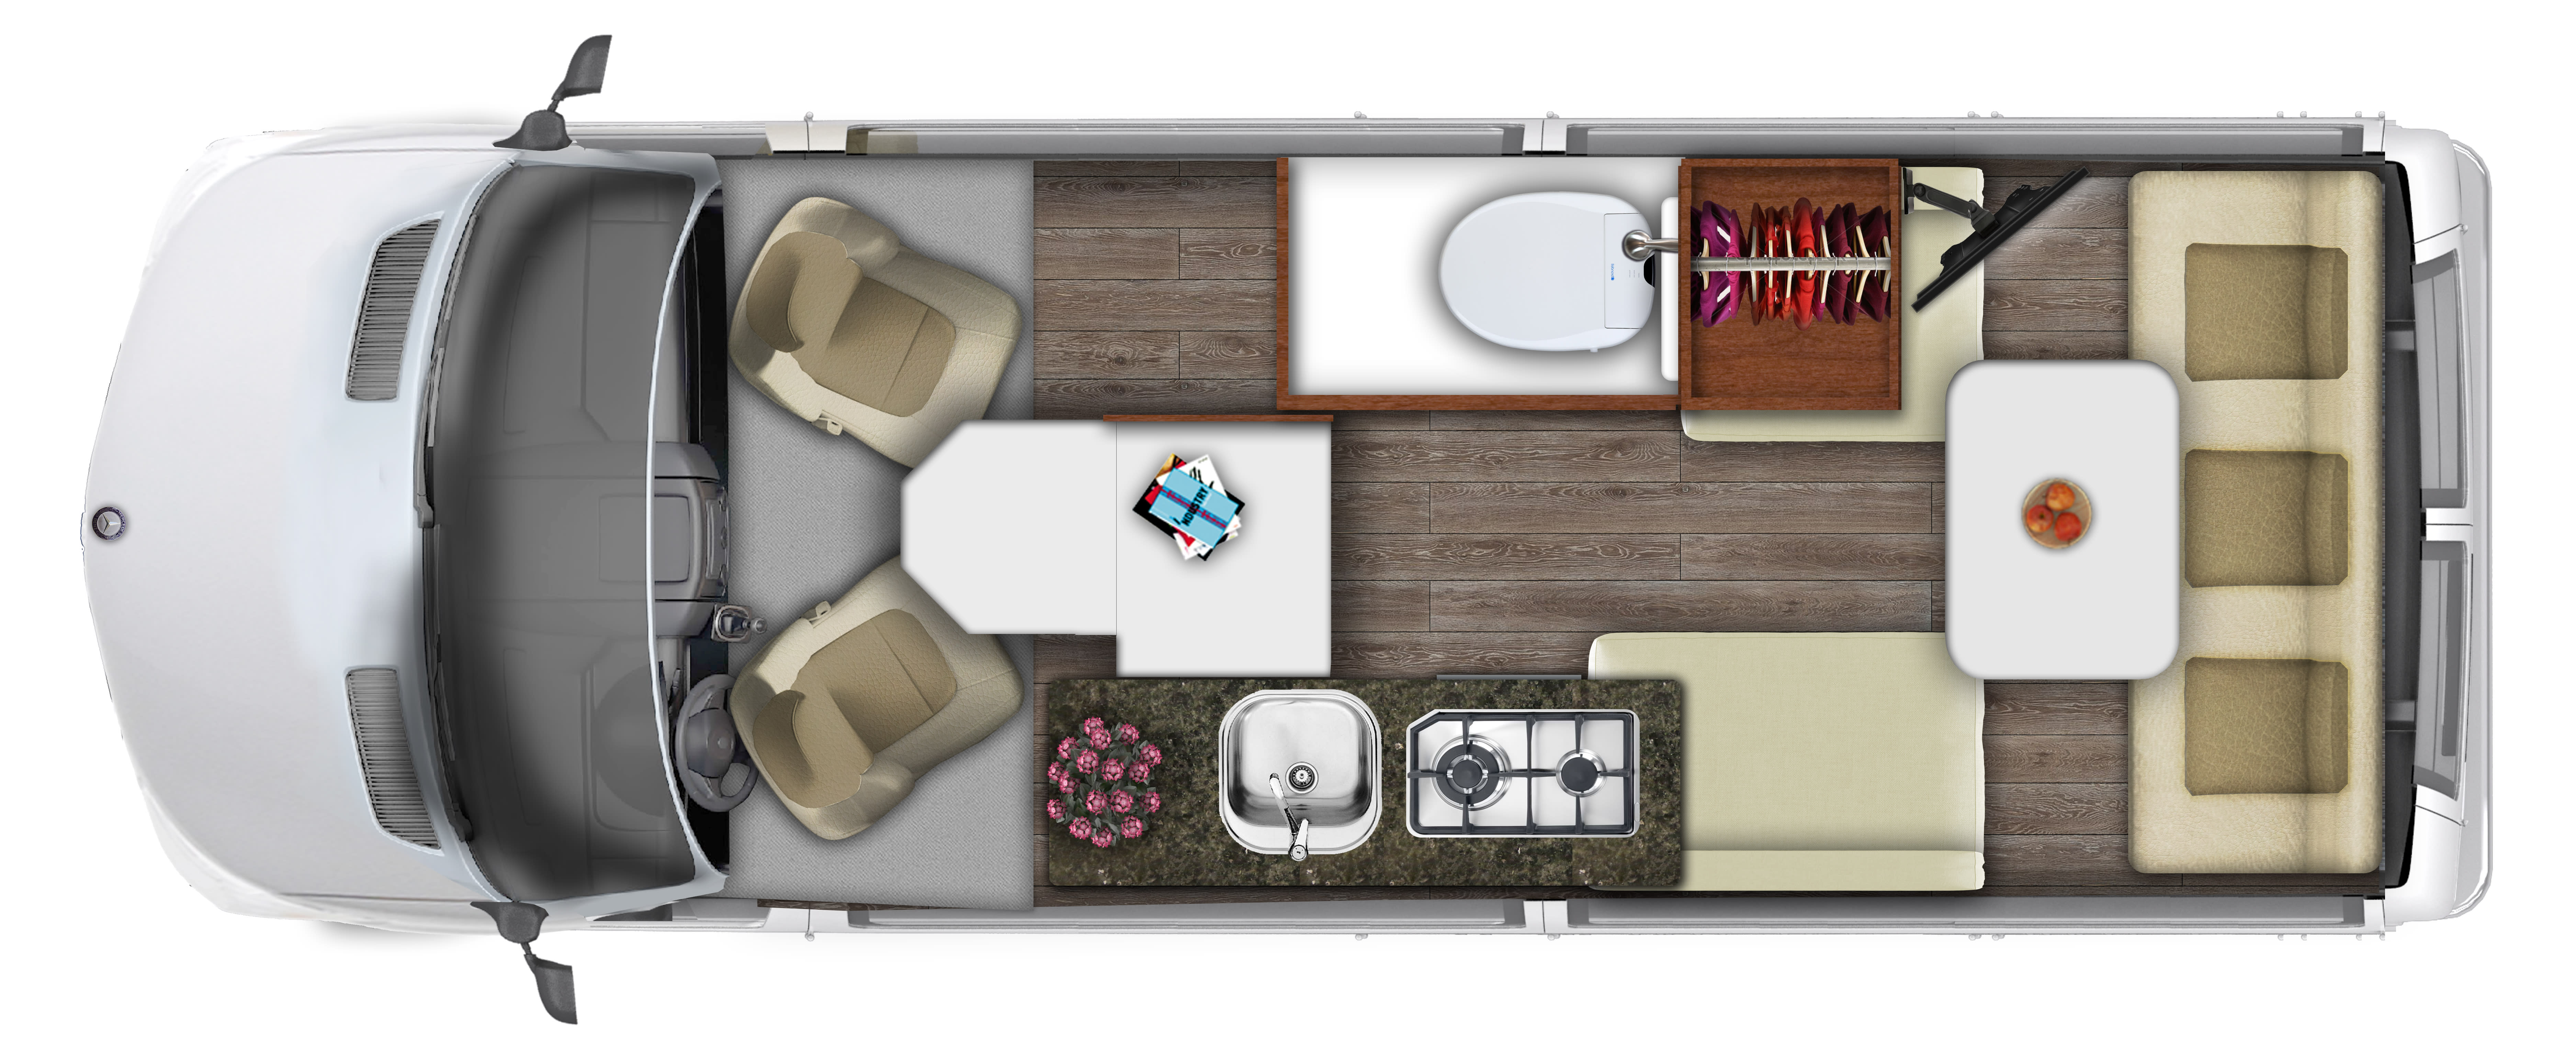 Split twin floor plan. Roadtrek Agile Ss 2017